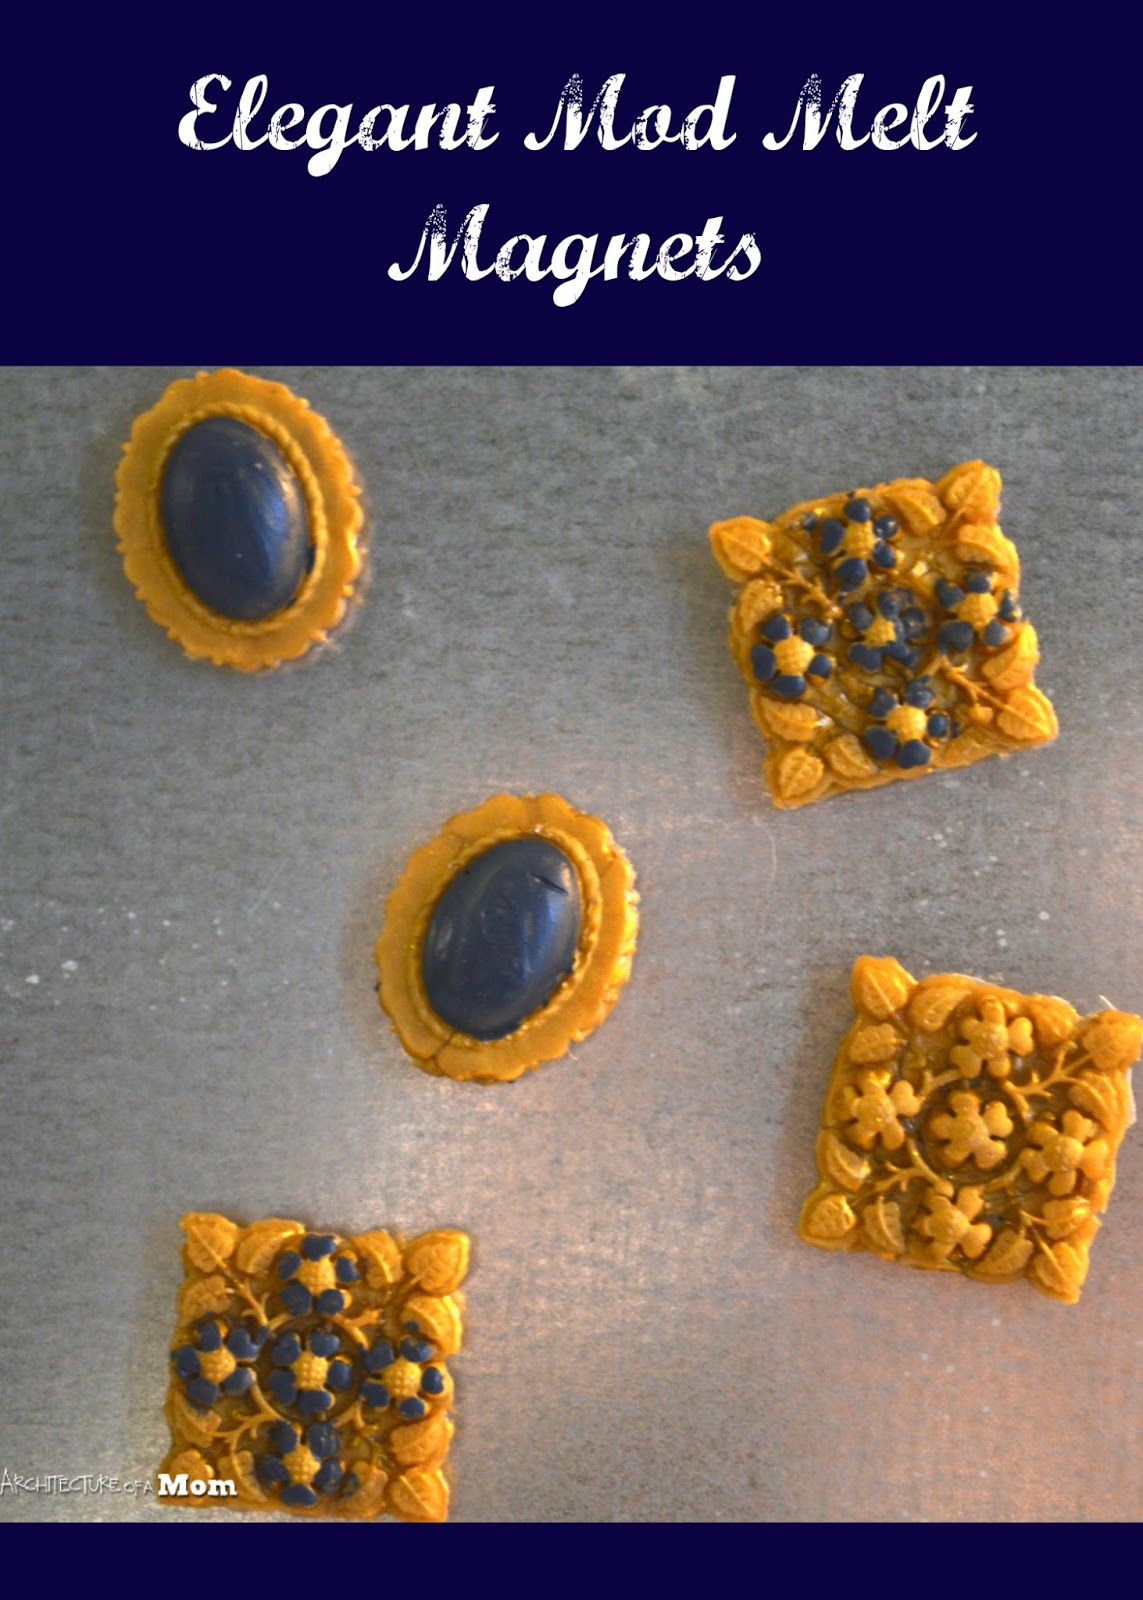 Architecture Of A Mom Easy Mod Melt Magnets